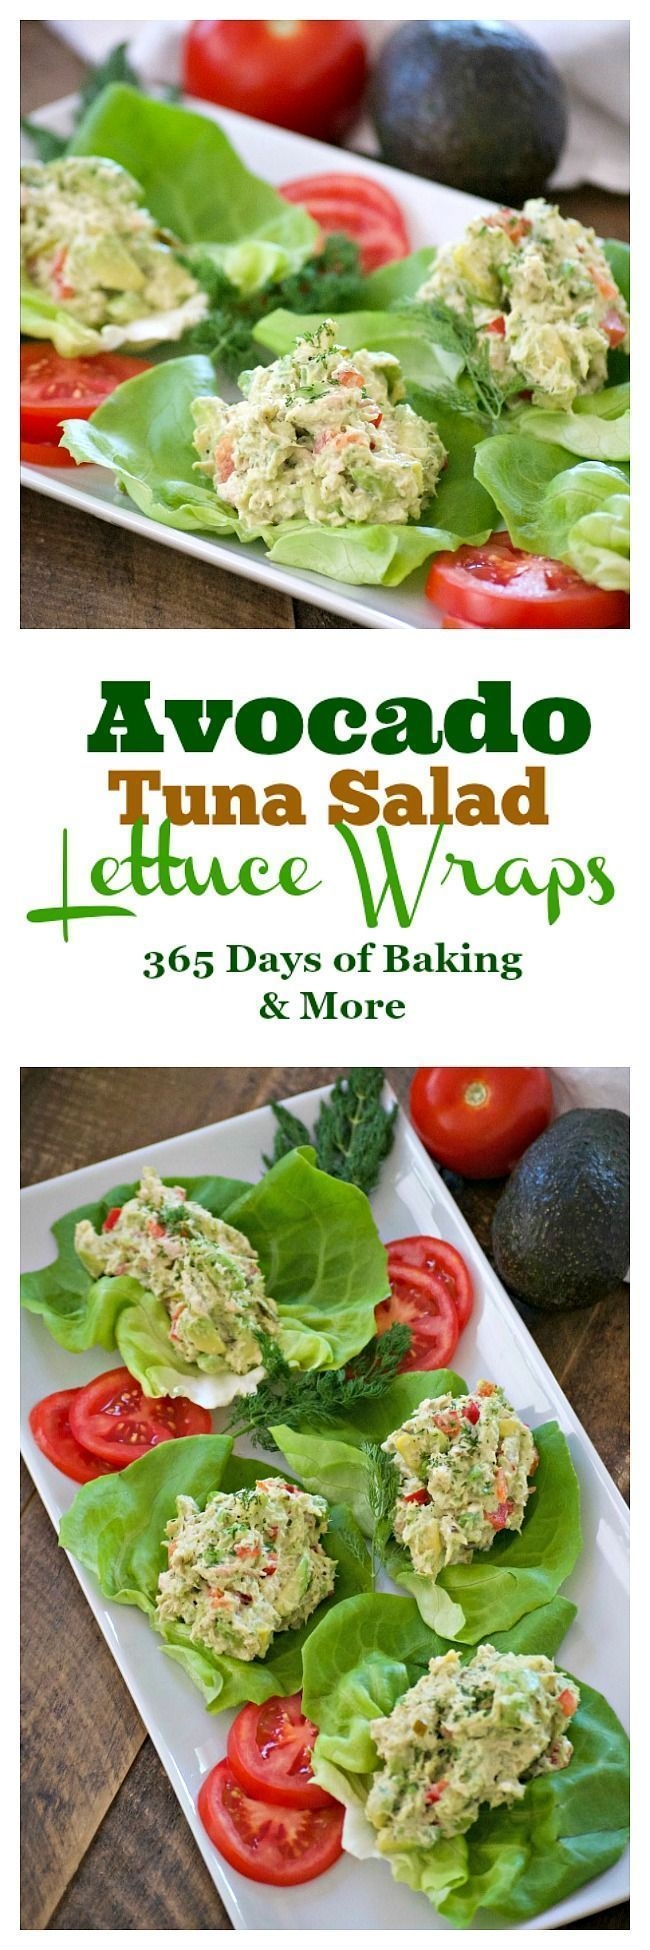 These Avocado Tuna Salad Lettuce Wraps with solid white tuna, avocado, fresh dil... -